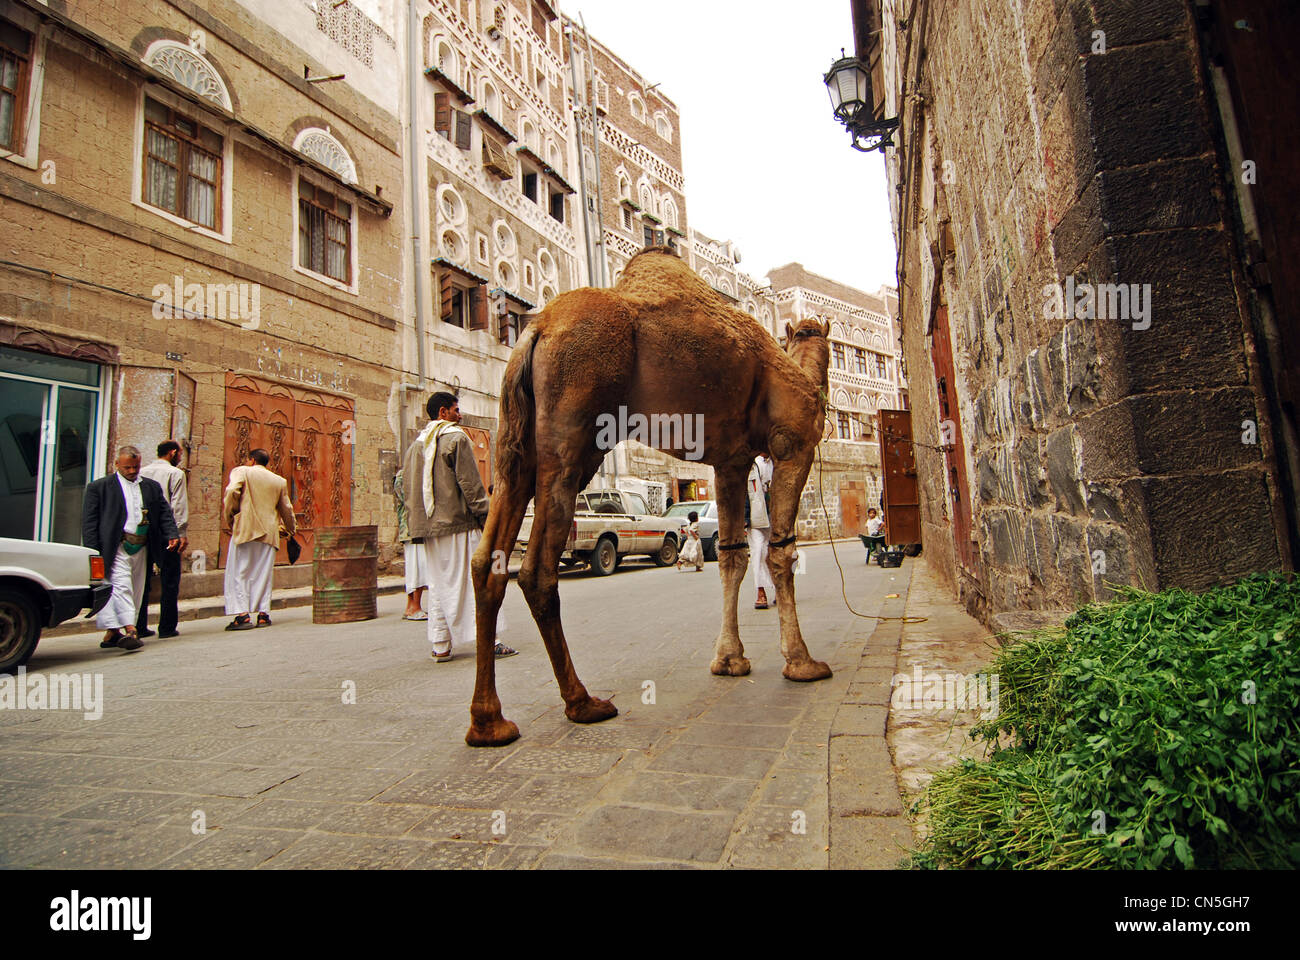 Yemen, Sanaa, old town listed as World Heritage by UNESCO, people walking on street with camel - Stock Image